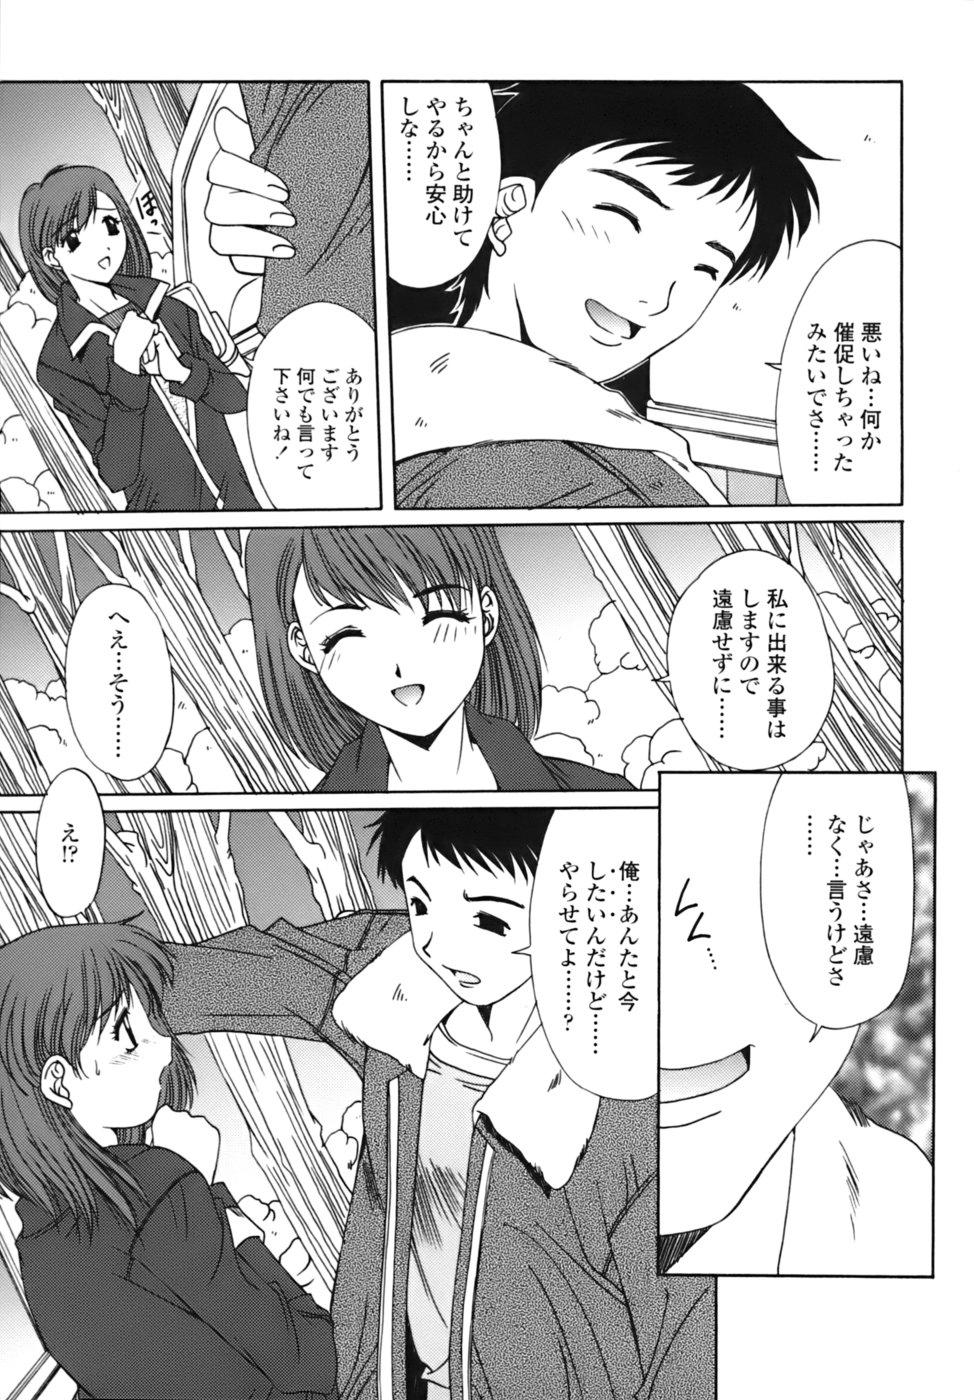 Sange No Koku - At the Time of Scattering Flowers 122